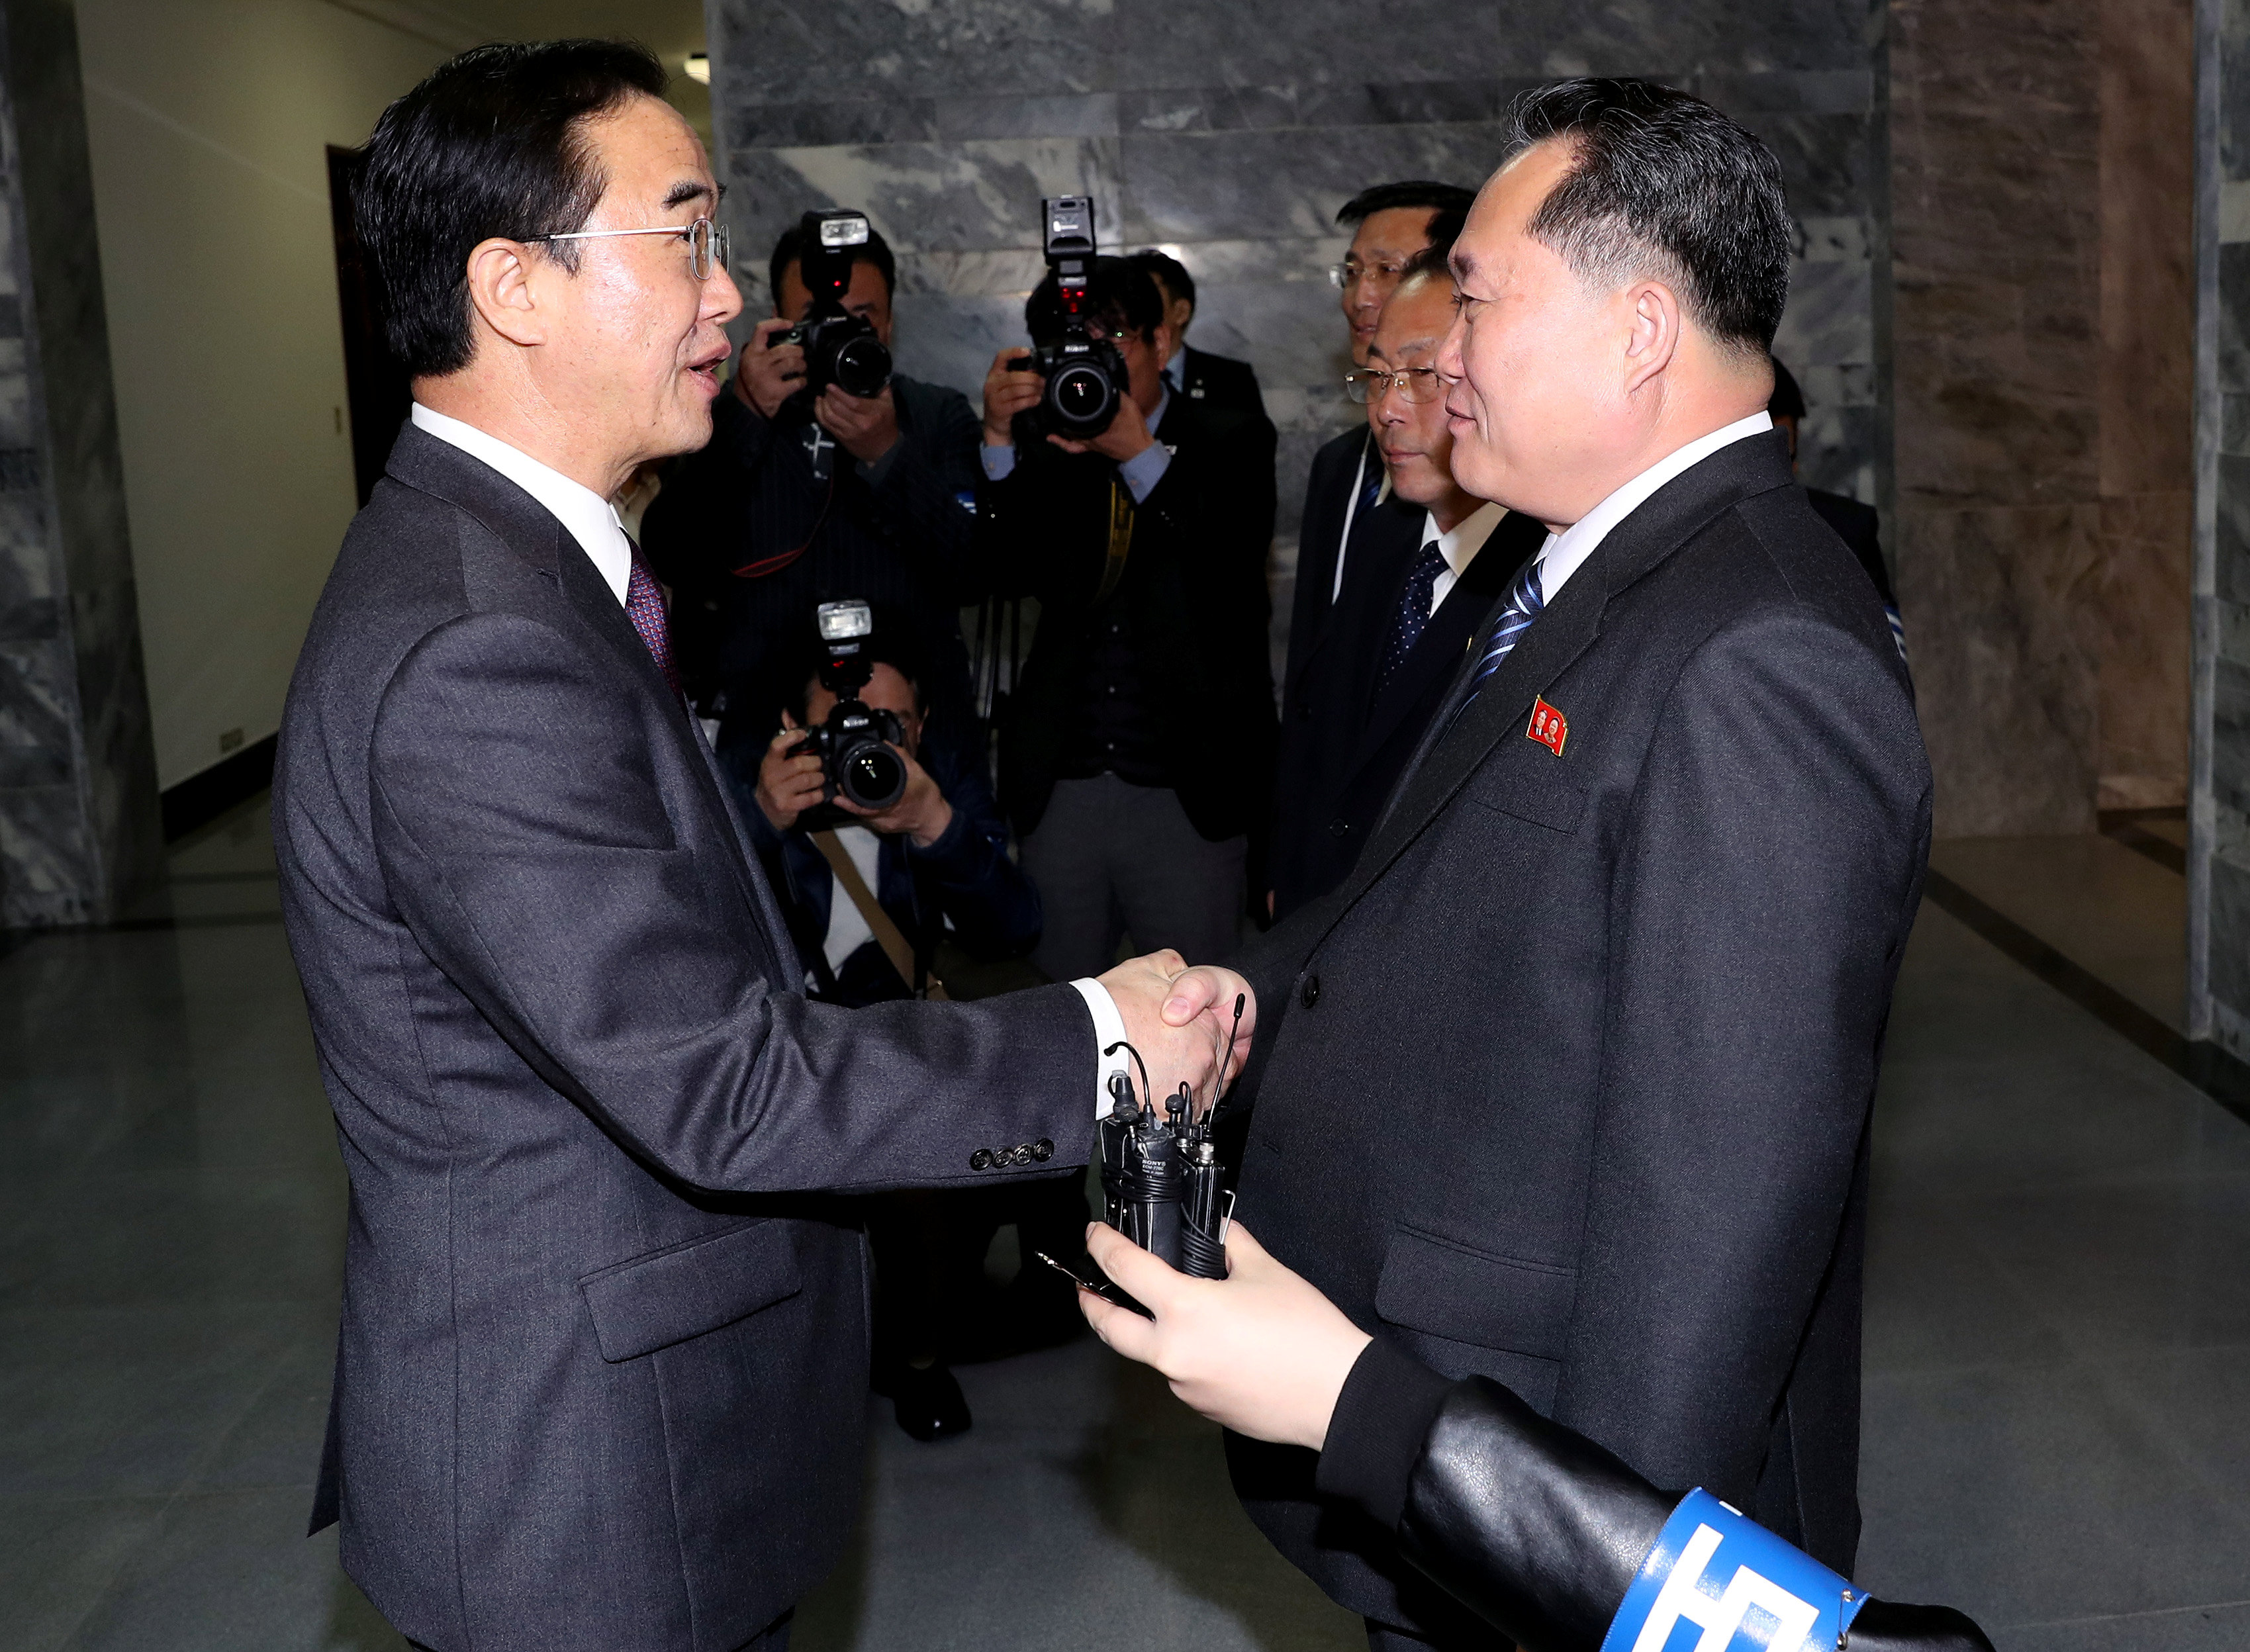 South Korean Unification Minister Cho Myoung-gyon is greeted by his North Korean counterpart Ri Son Gwon as he arrives for their meeting at the truce village of Panmunjom, North Korea, March 29, 2018. Korea Pool/Yonhap via REUTERS